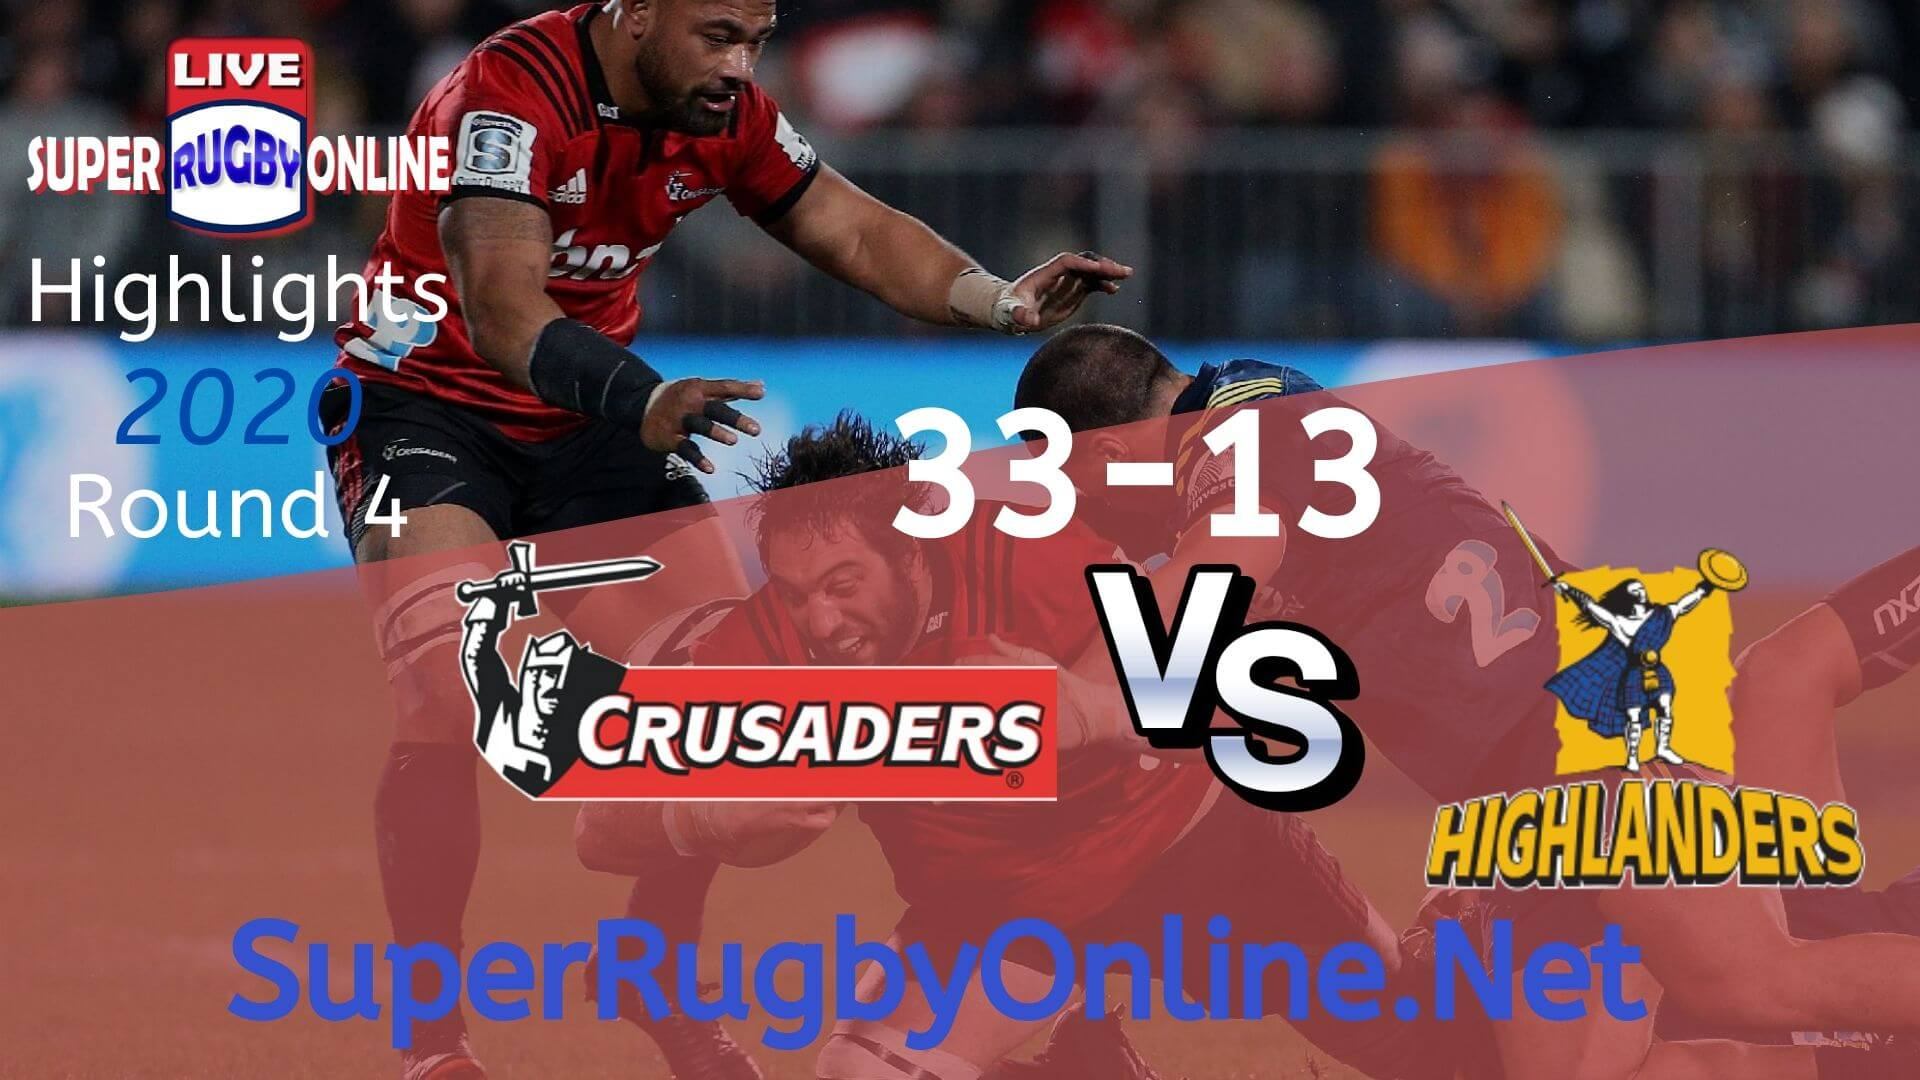 Crusaders Vs Highlanders Rd 4 2020 Super Rugby Highlights